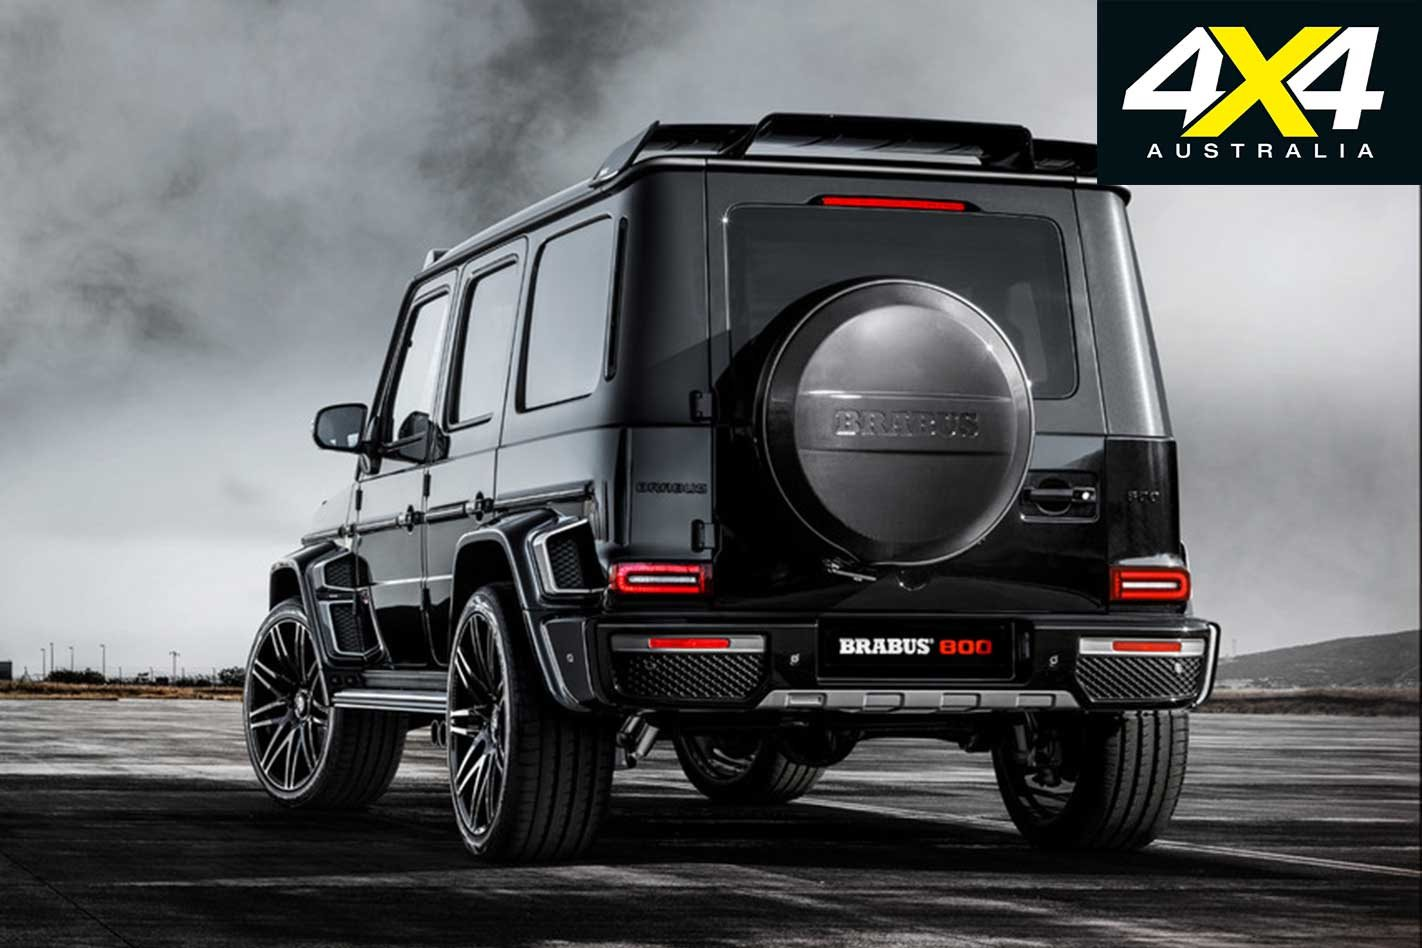 Brabus AMG G63 800 Widestar revealed at the 2019 Geneva Motor Show